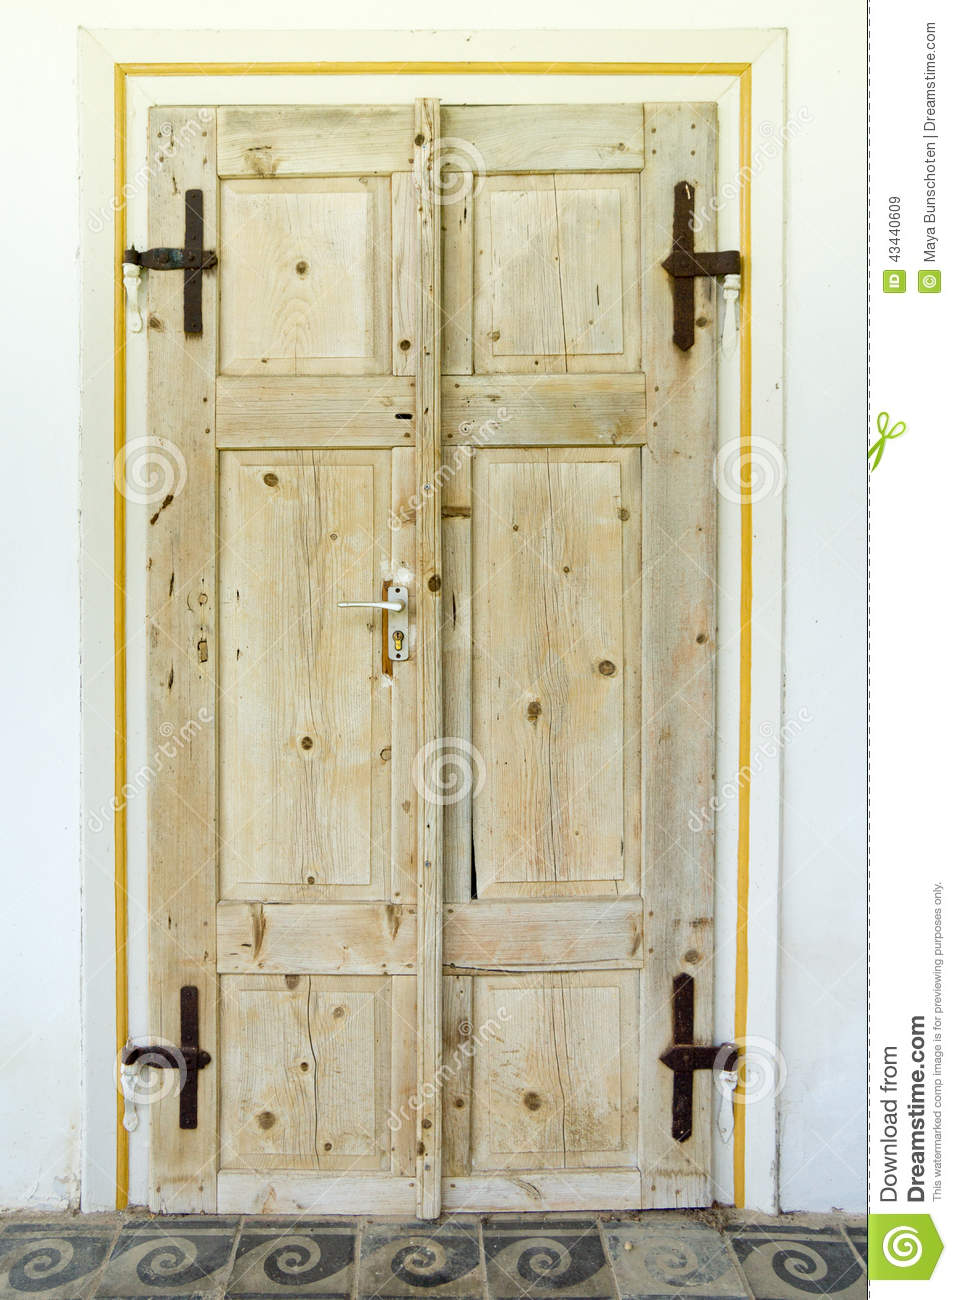 Doubles vieilles portes en bois photo stock image 43440609 for Vieille porte de ferme